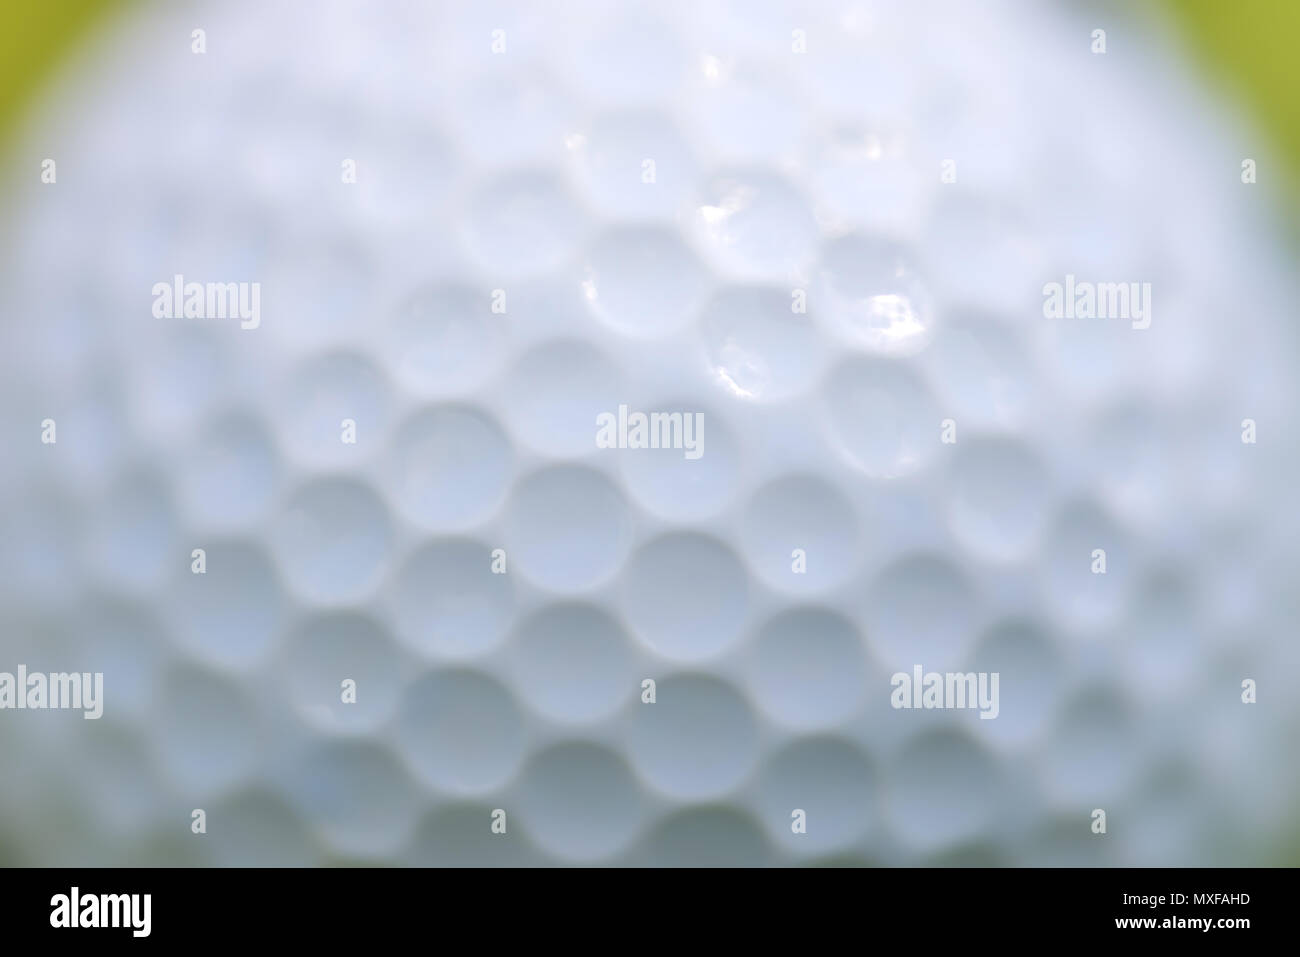 Close up golf ball texture background - Stock Image